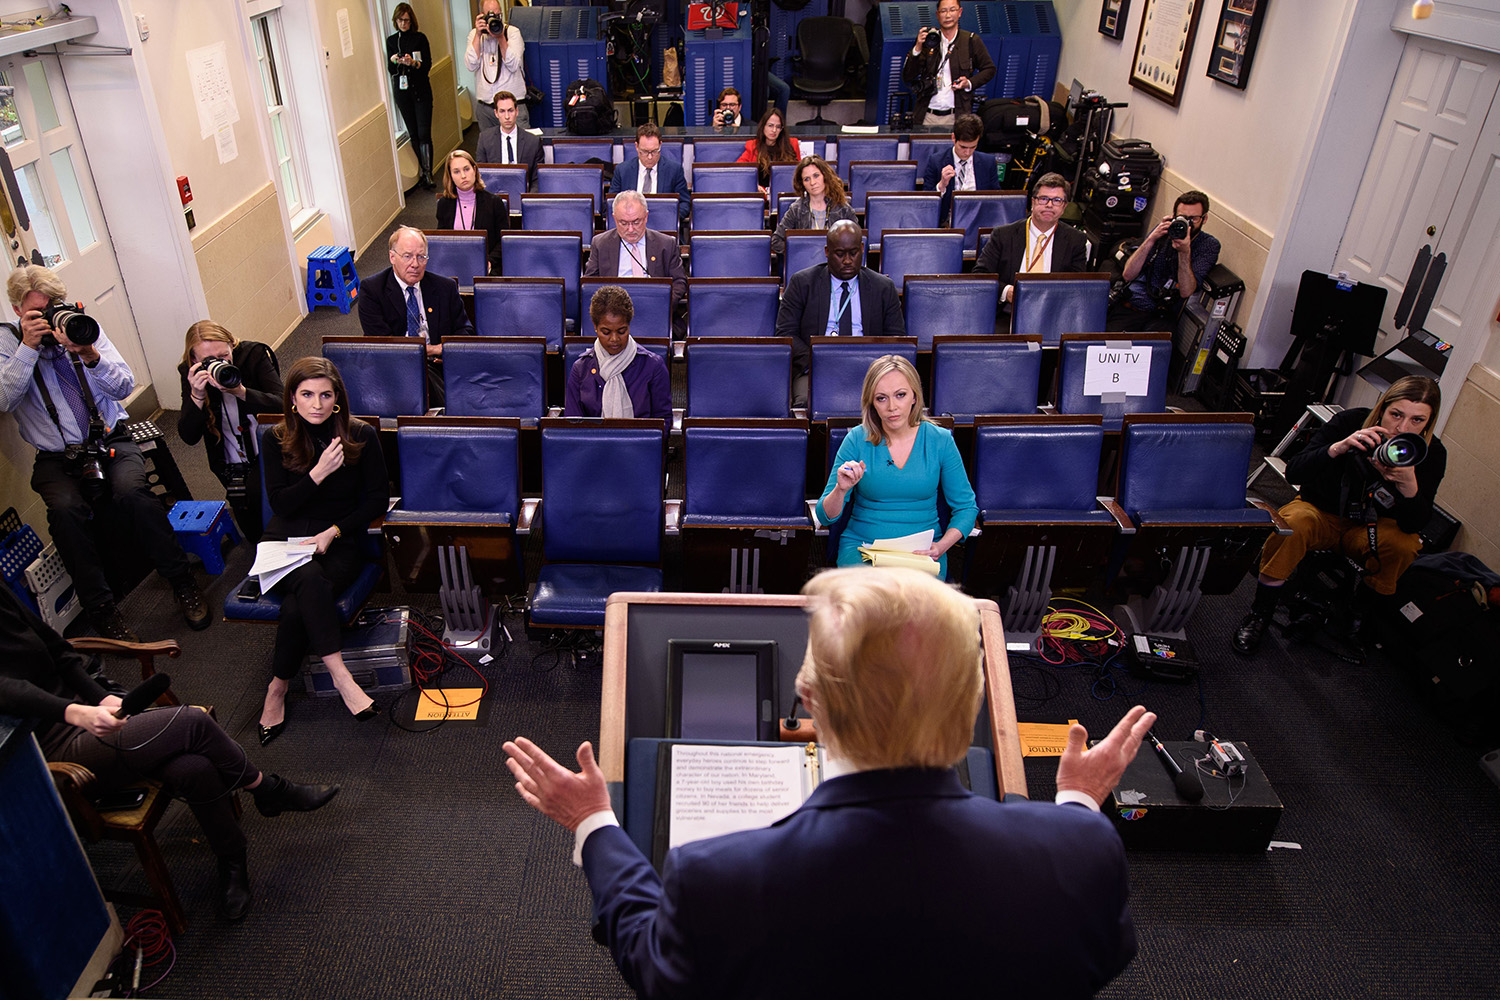 U.S. President Donald Trump speaks during the daily briefing on the coronavirus in the Brady Press Briefing Room at the White House on March 25. MANDEL NGAN/AFP via Getty Images